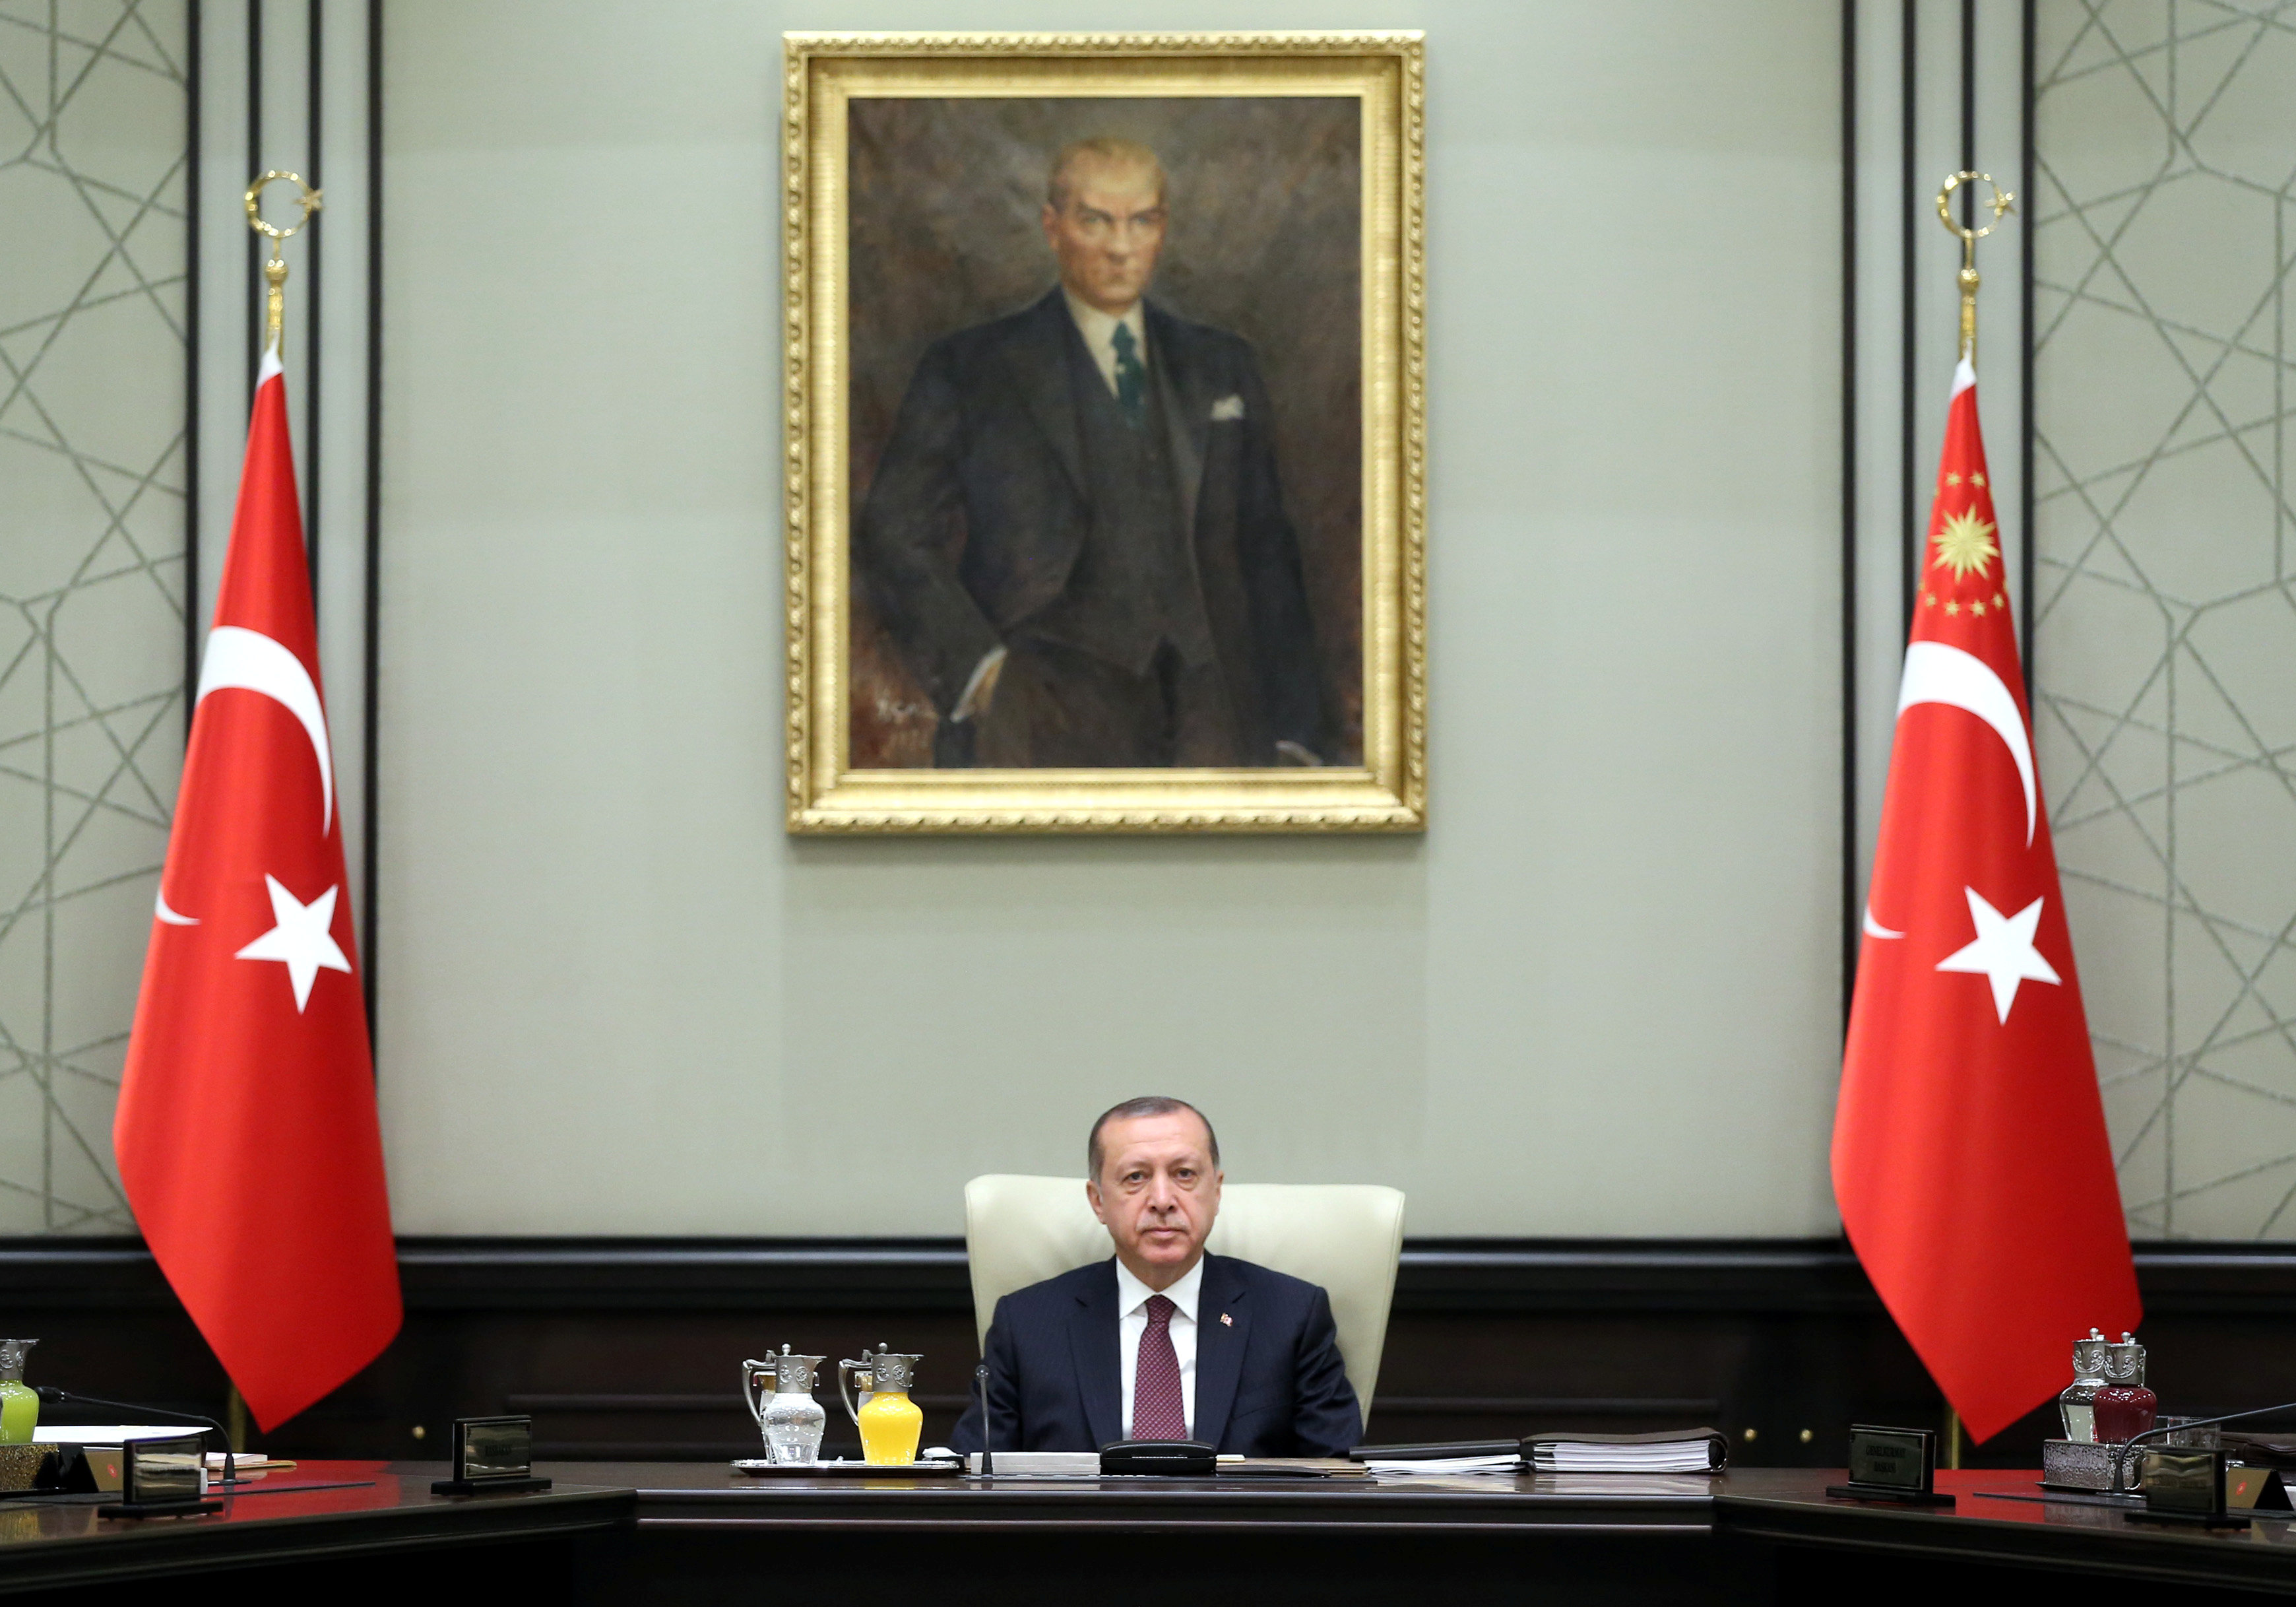 Turkish President Tayyip Erdogan chairs a National Security Council meeting in Ankara, Turkey, July 17, 2017